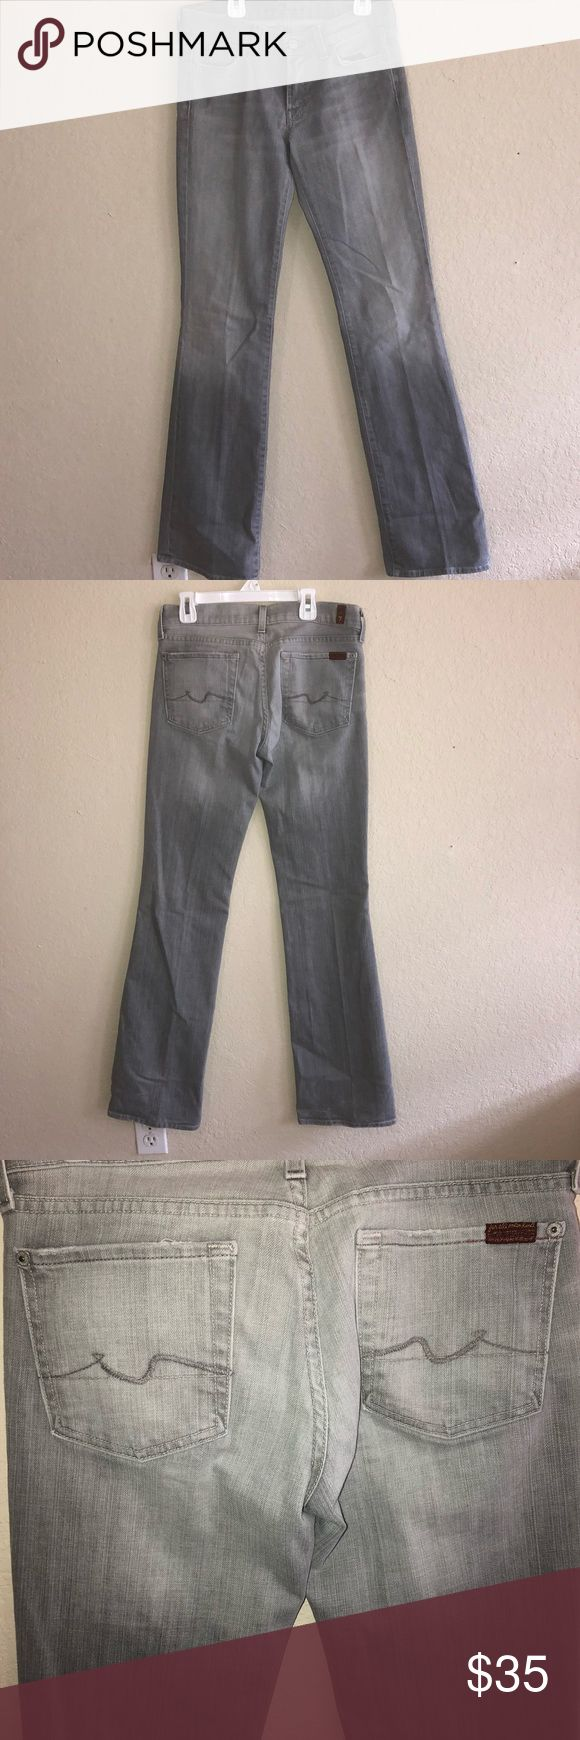 👖 7 for all man kind Jeans 👖 Light grey Bootcut Jeans 👖 EUC size 28 7 For All Mankind Jeans Boot Cut